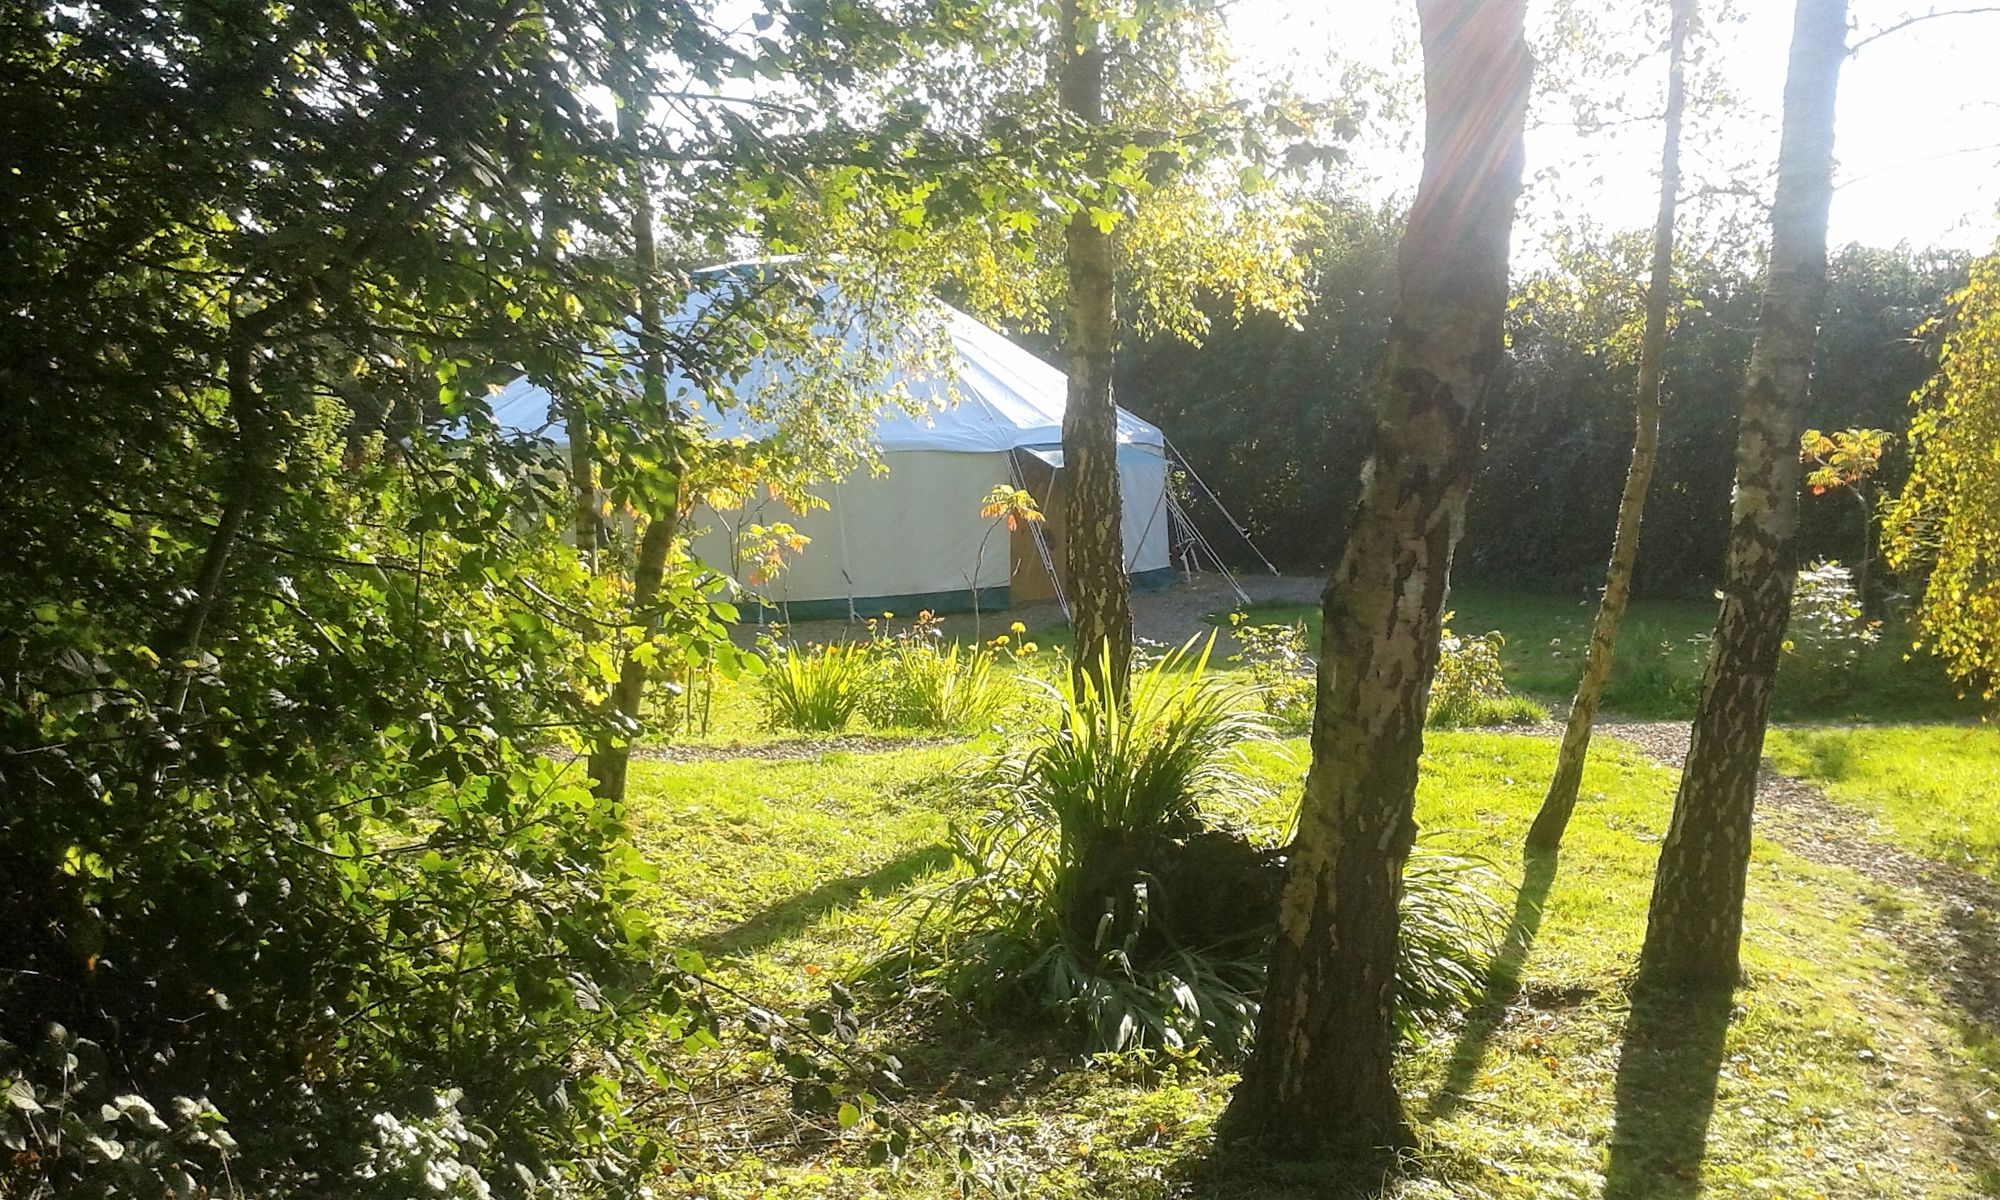 Yurt retreats in the Forest of Dean that bring a real break to every day life with weekend events such as yoga, creative textiles and other well-being activities.